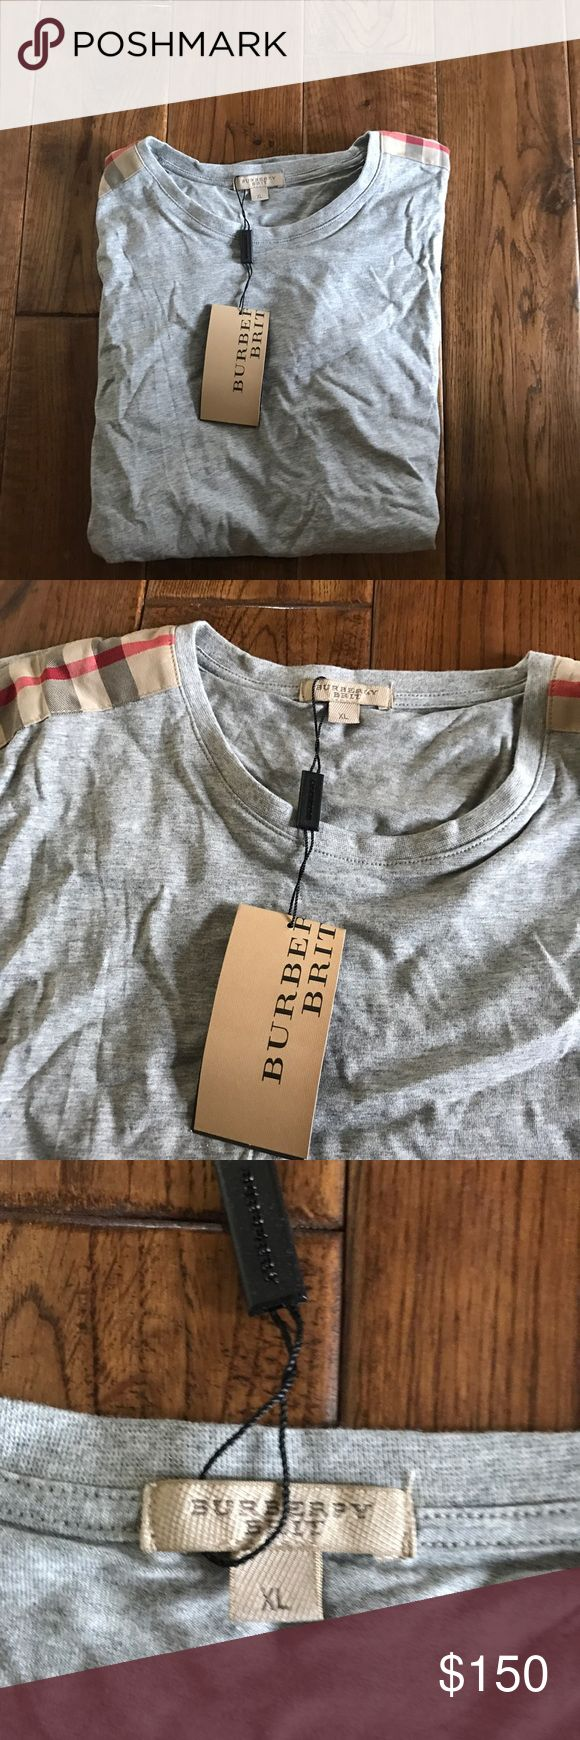 Men's Burberry T-Shirt Size XL Men's never worn before Burberry t-shirt! XL, fits like a LARGE! Burberry Shirts Tees - Short Sleeve